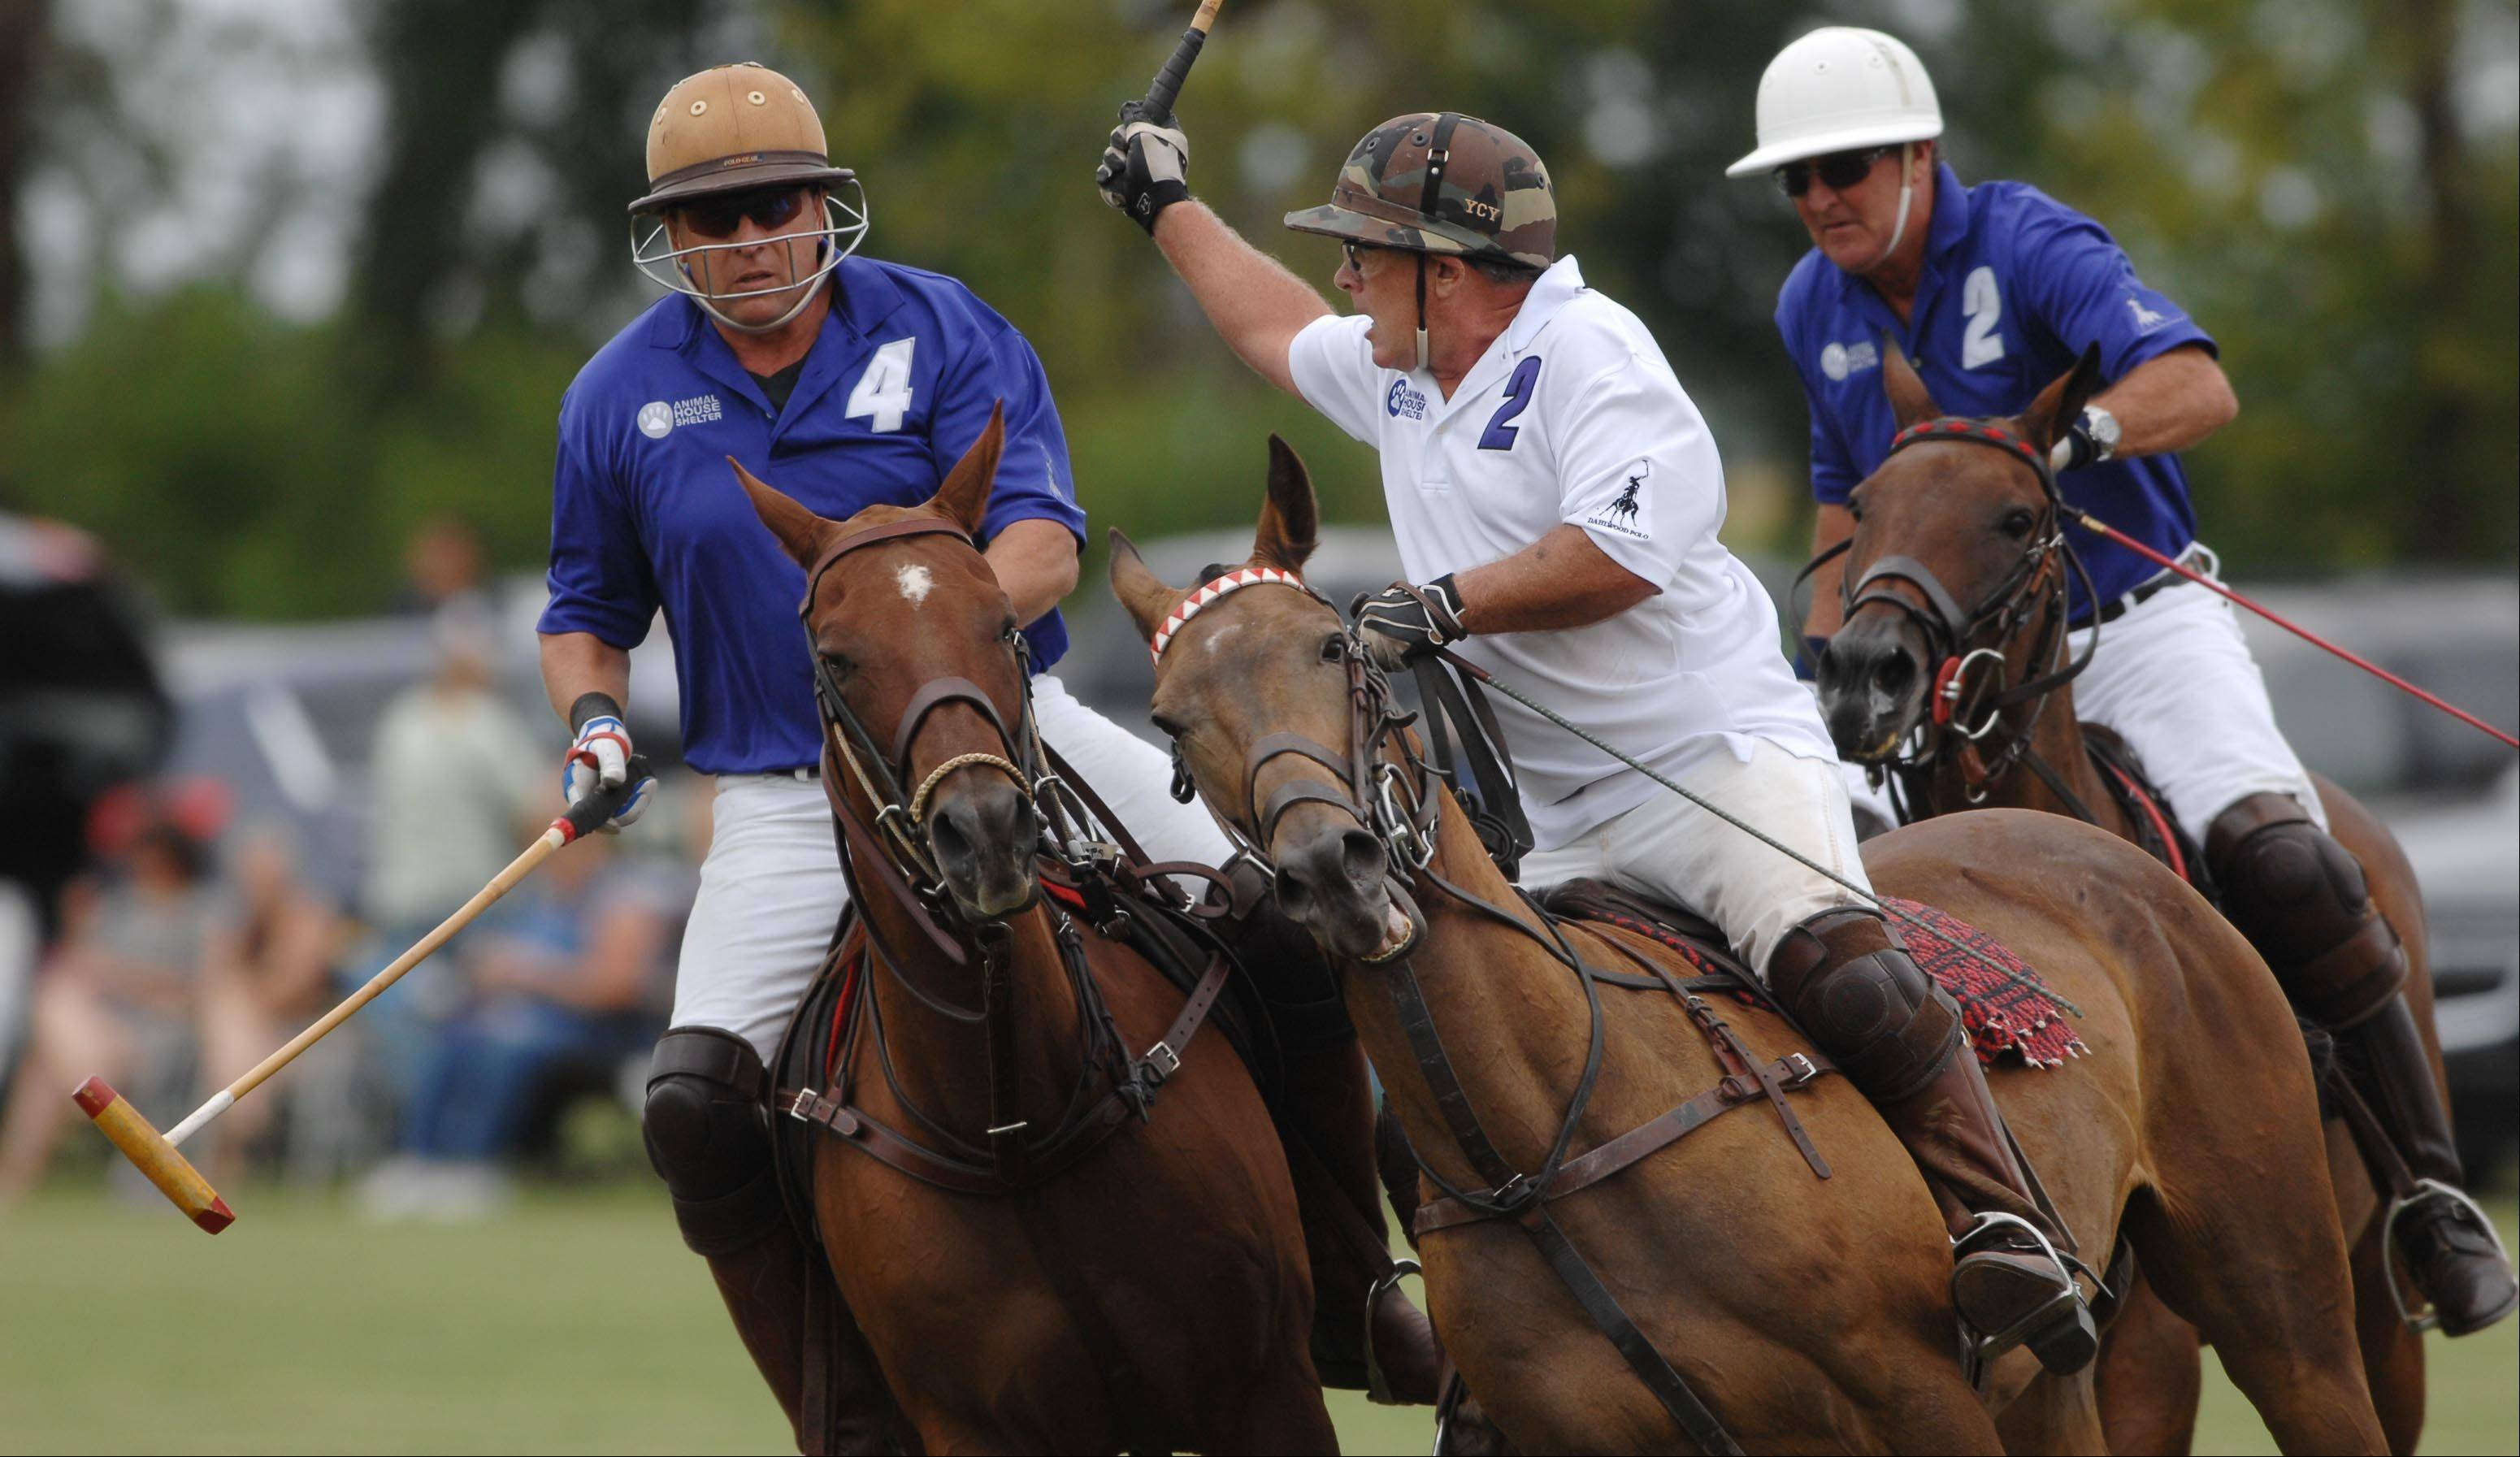 John Green watches his shot as Robert Soos, left, and David Wigdahl chase him during the second annual Polo for Pets Tailgate Charity Match Sunday at the Dahlwood Polo Farm in Elgin. The match raised money for the Animal House Shelter in Huntley.